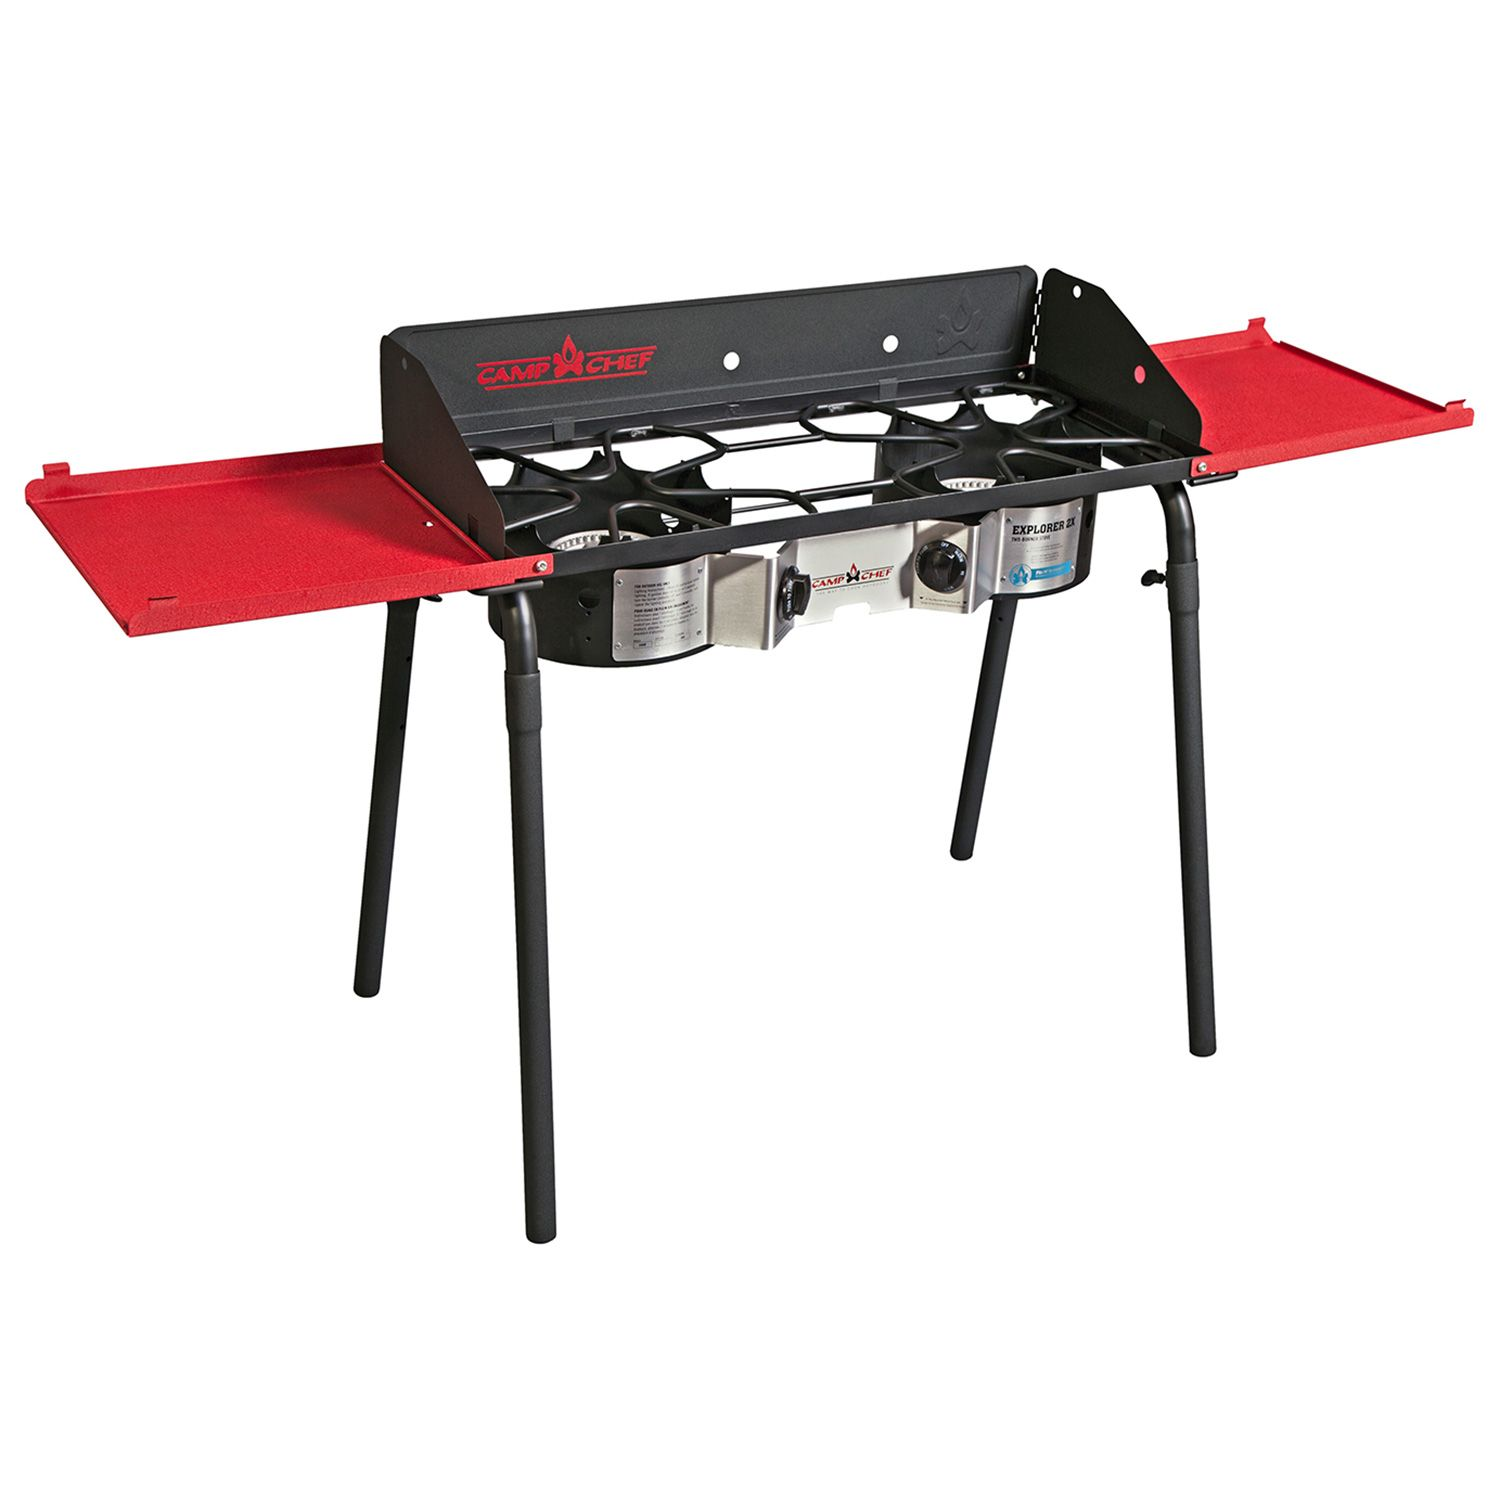 Camp Chef Explorer 2 Burner Deluxe Combo Stove Camp Chef Stove Camping